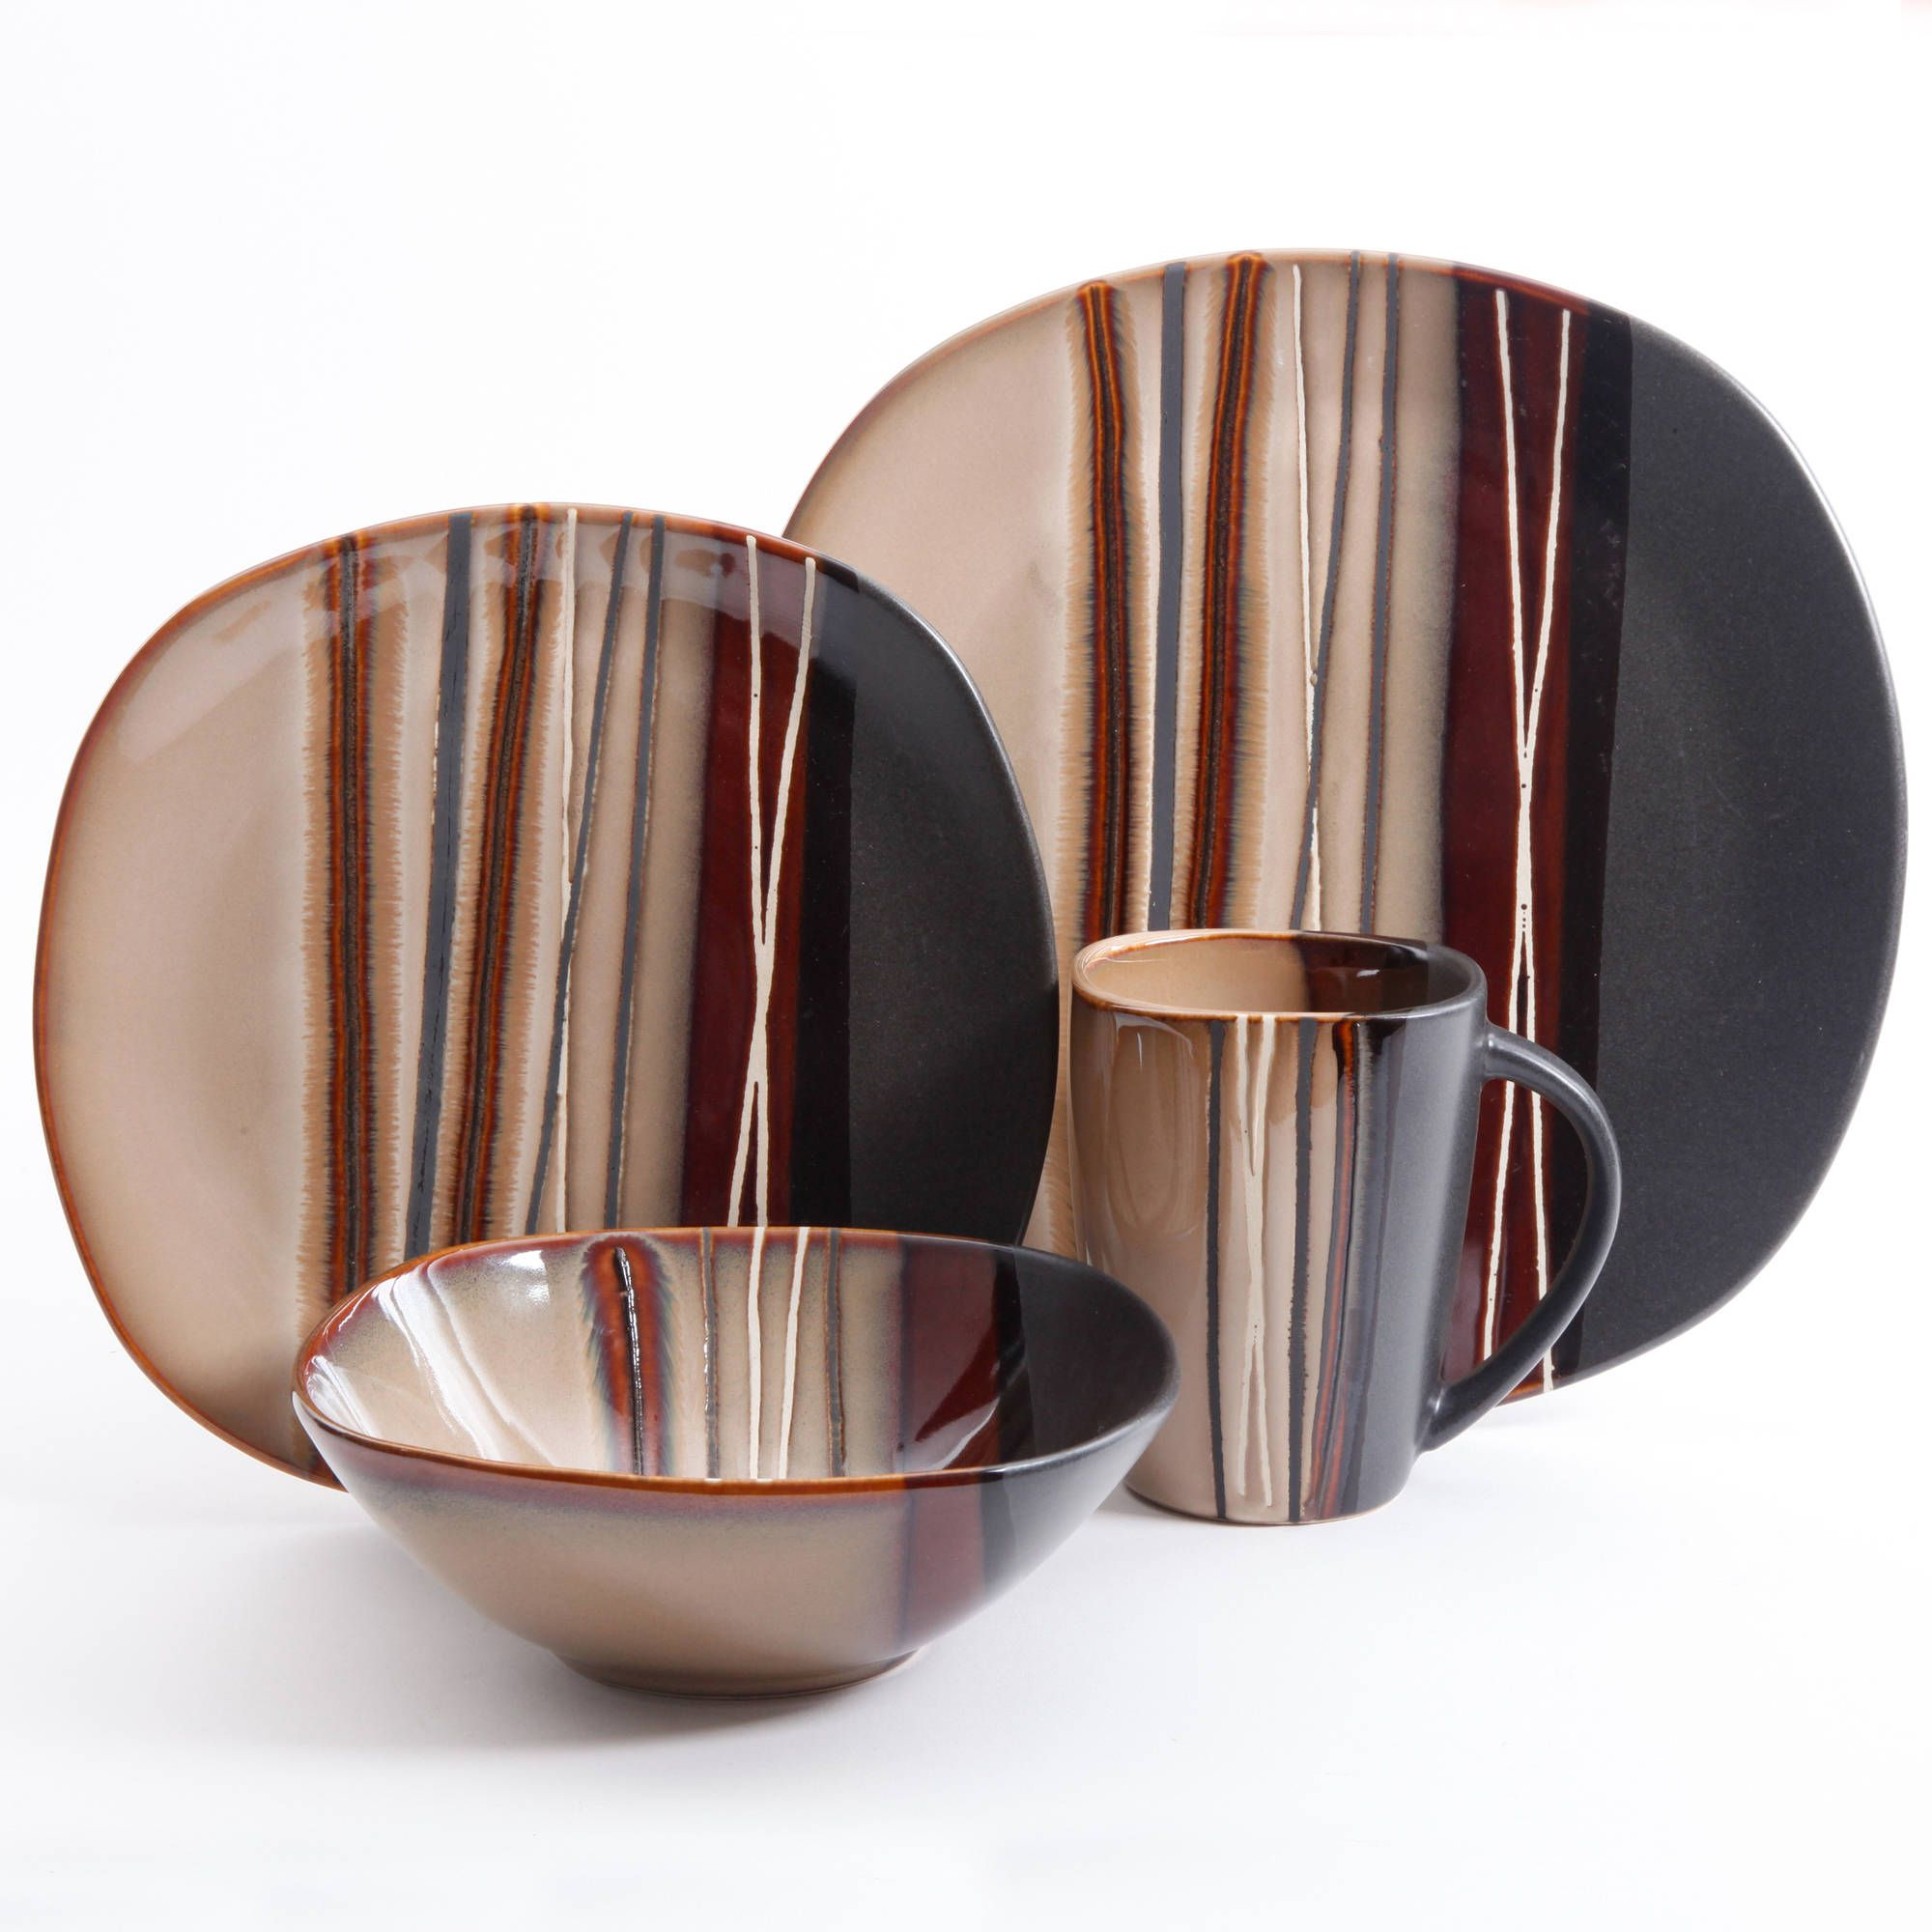 a0a7e911c69199d81b42b4f602a4a3cd - Better Homes And Gardens Bazaar Brown Bowls